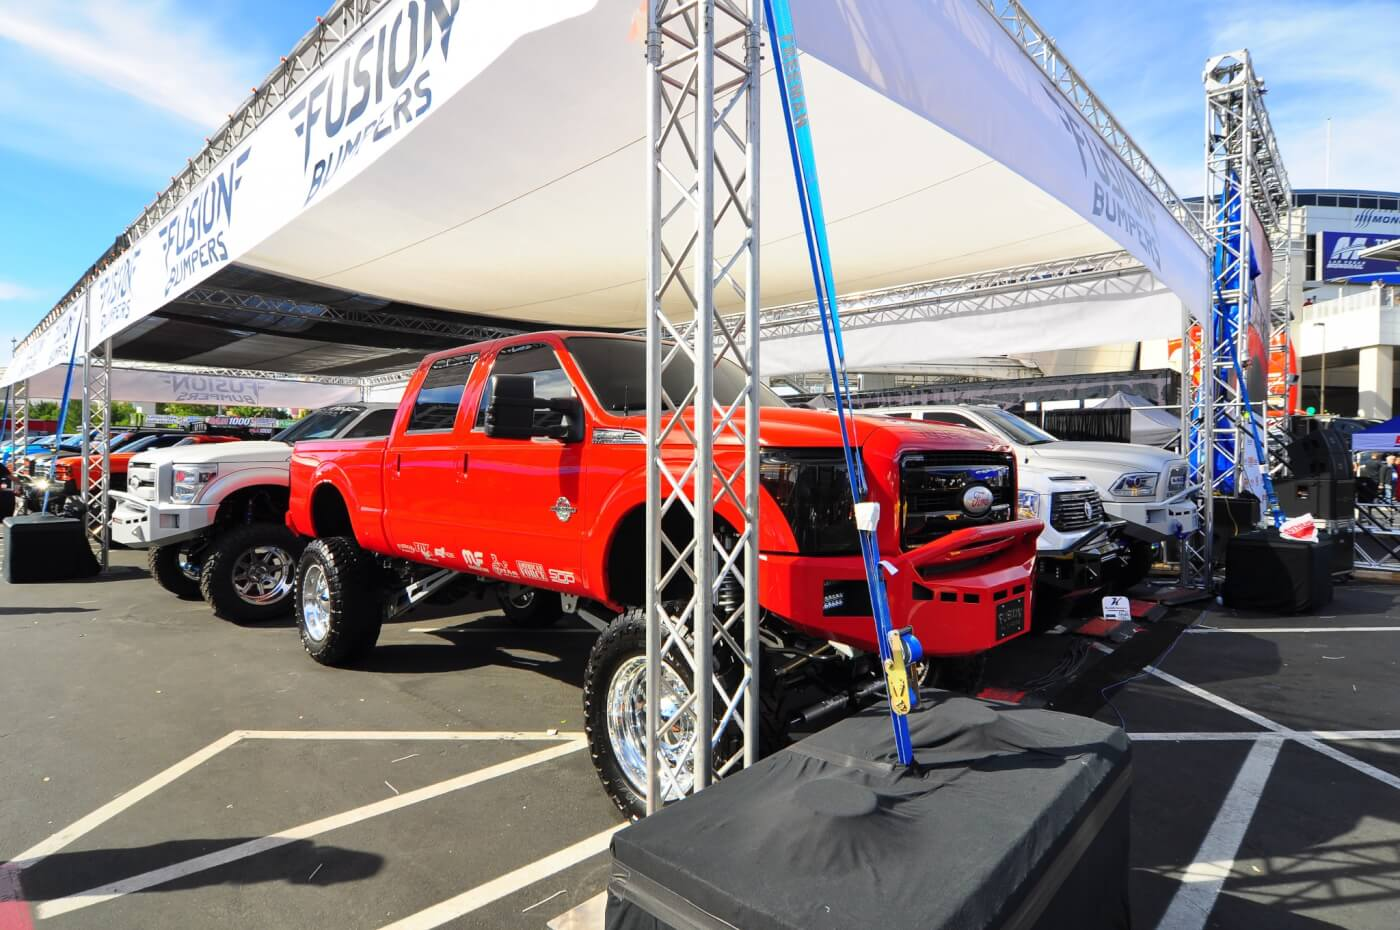 Fusion Bumpers had a massive showing this year with 46 heavily customized trucks on display. Every one being something we'd love to drive every day.